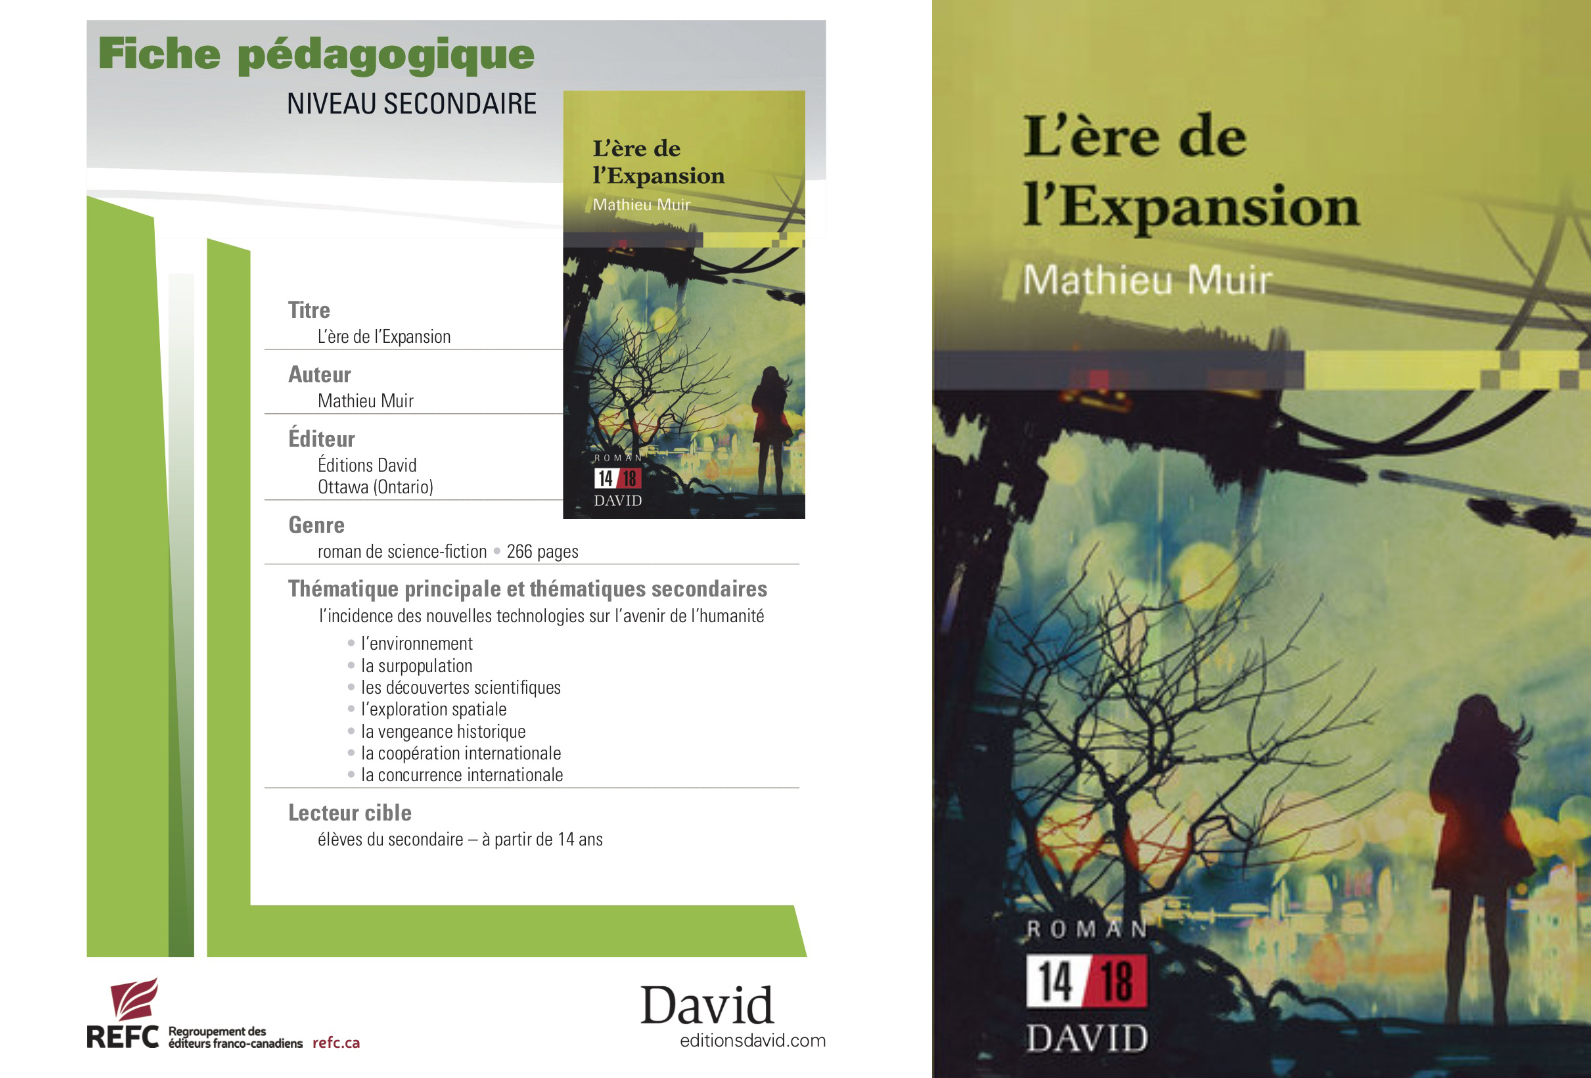 Visuel_RECF_FP_David_L ere de l expansion